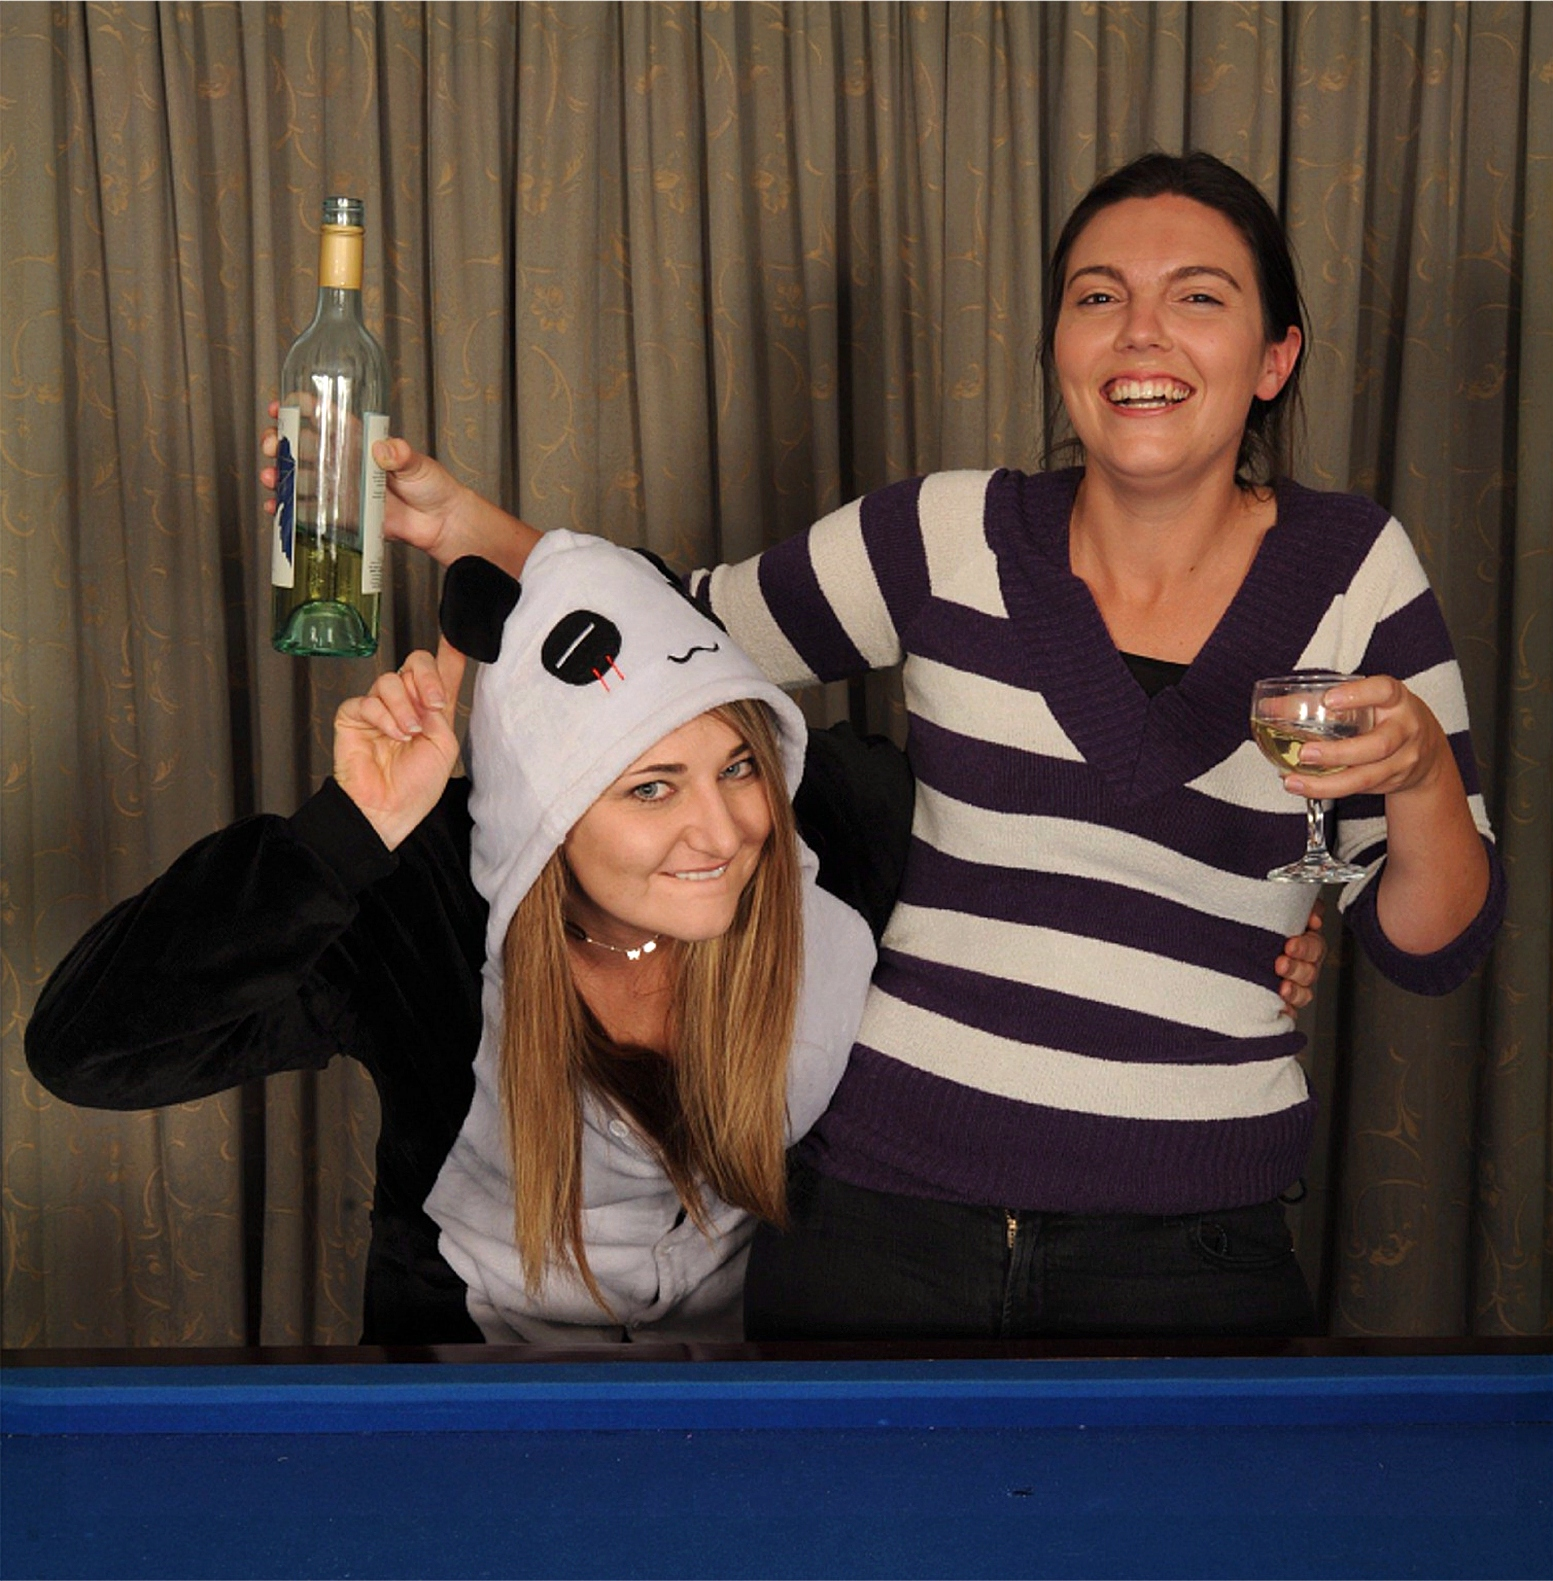 Jenny Palmer, left, and Ruhama Geiger explore the truth over a game of pool and glass of wine in  Never Ever . Picture: Michael McAllan